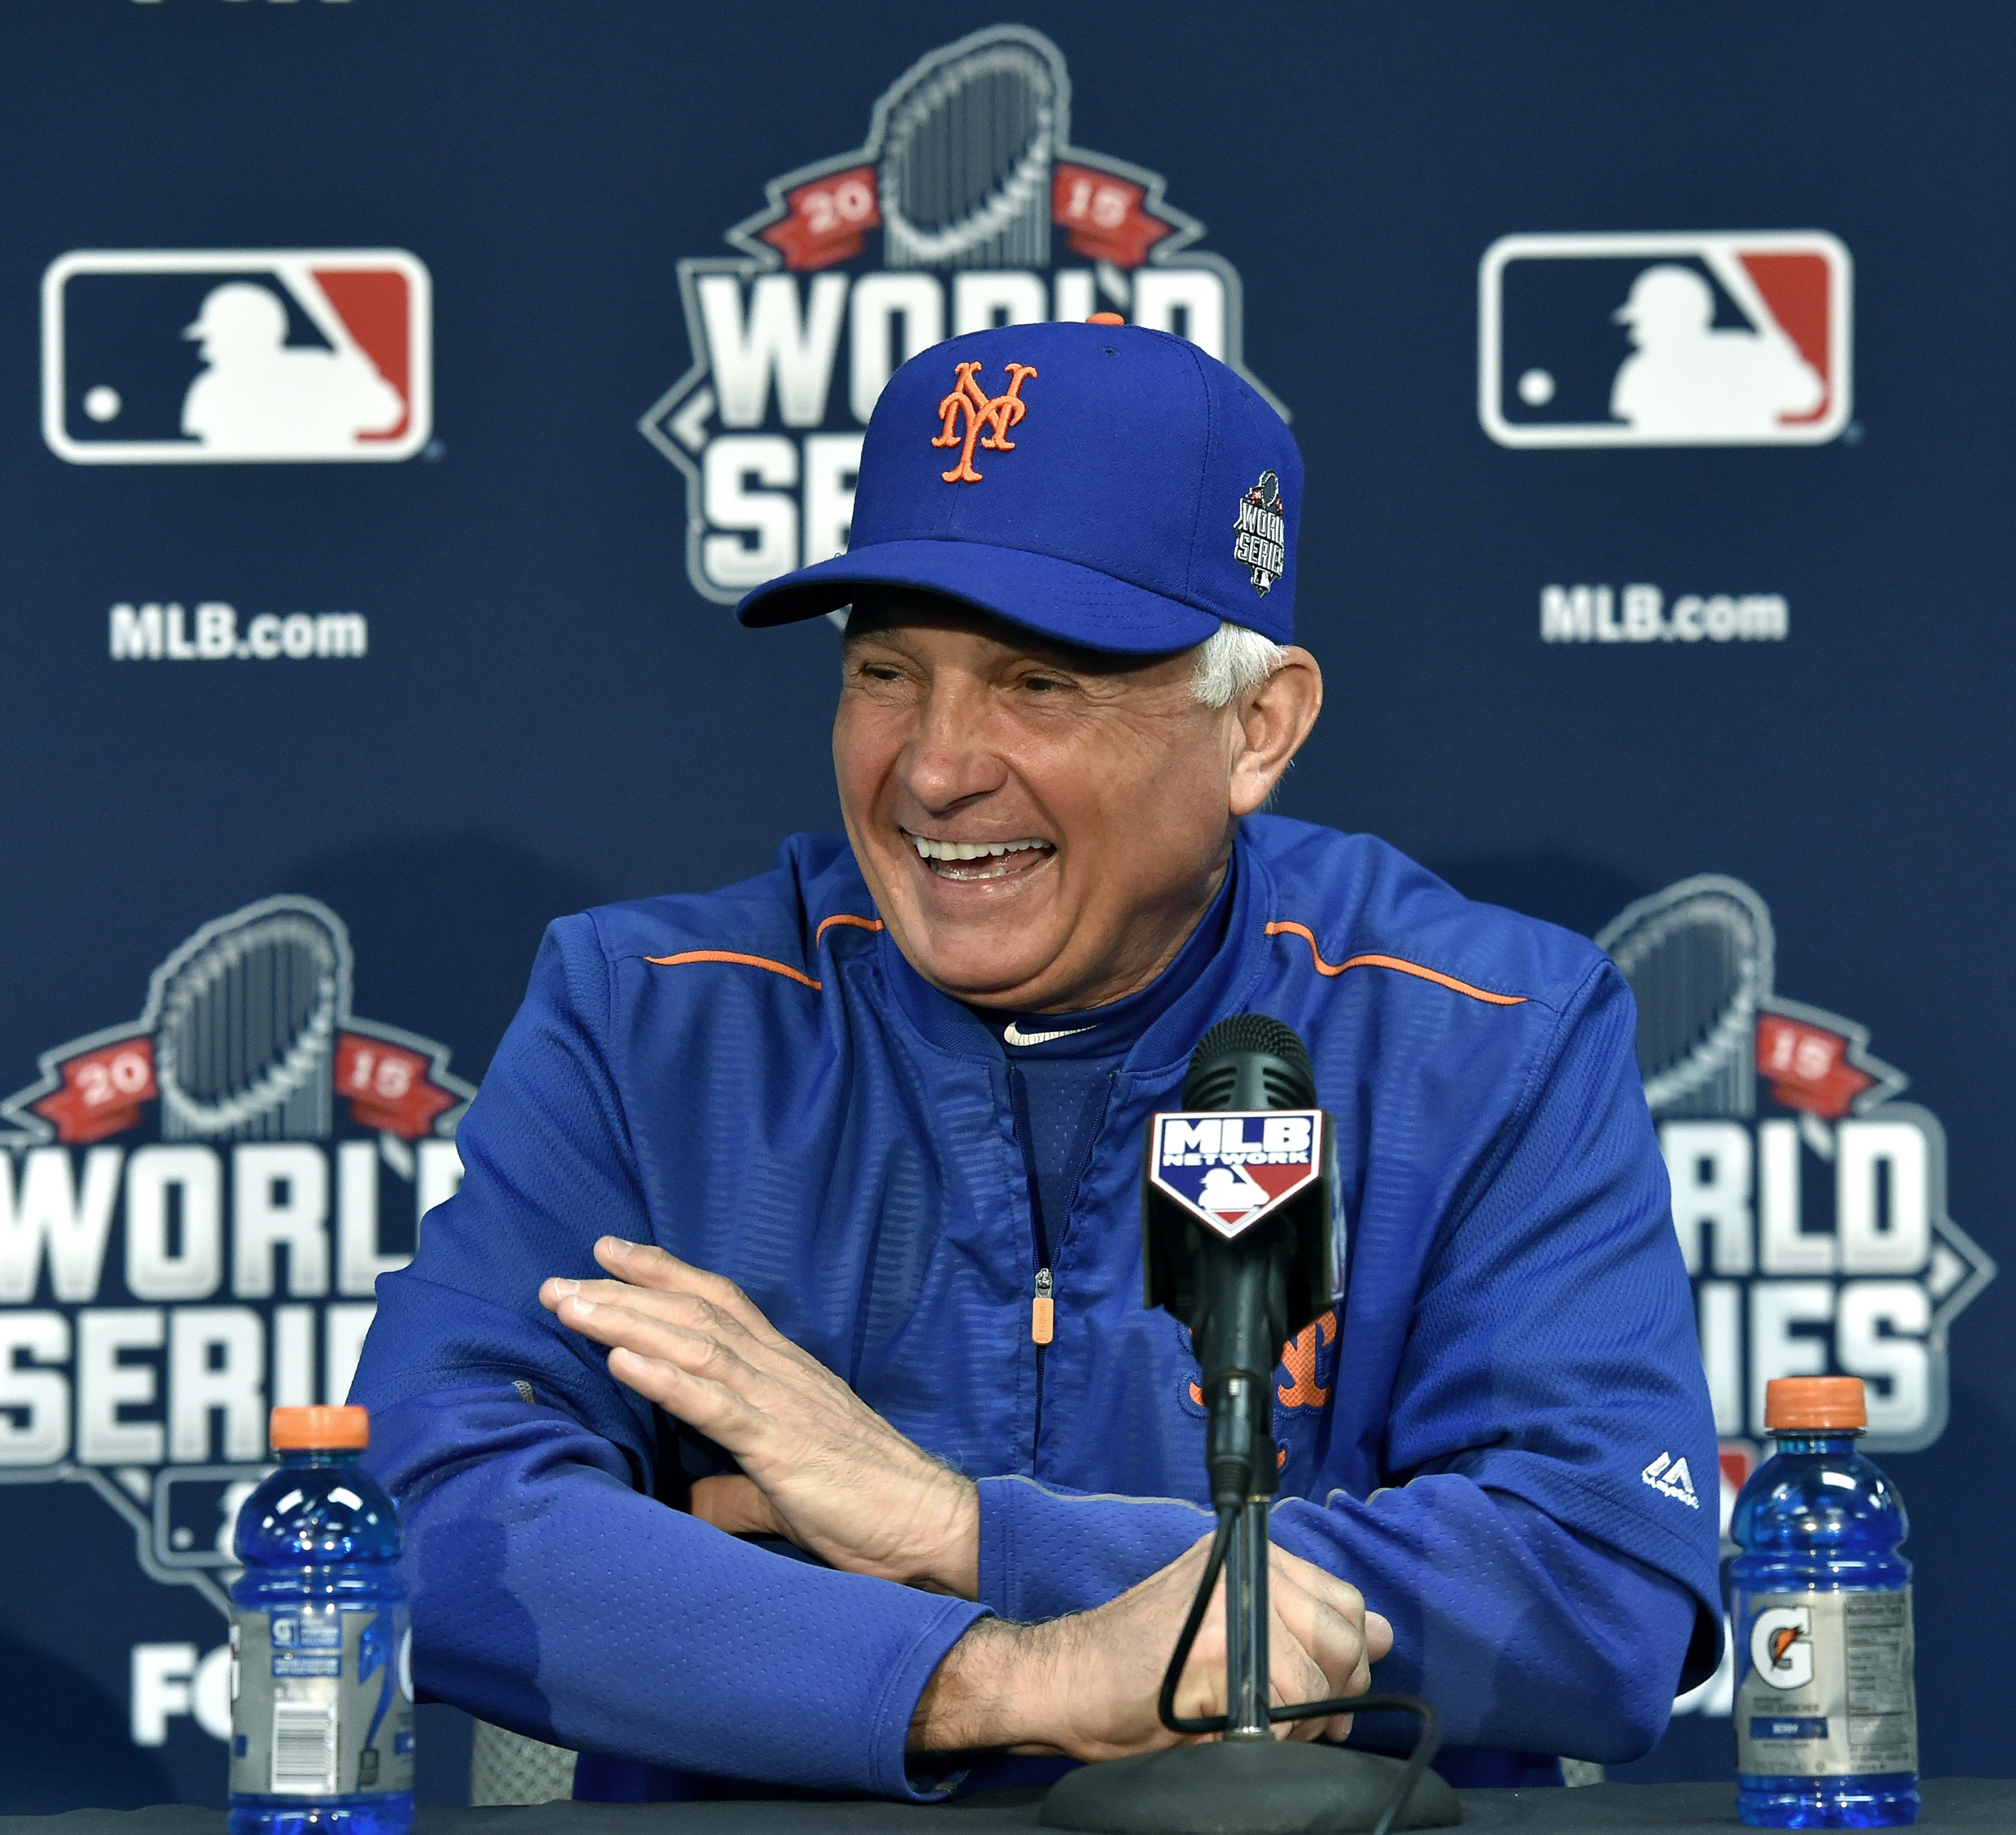 New York Mets manager Terry Collins during the World Series workout press conference on Monday, Oct. 26, 2015, at Kauffman Stadium in Kansas City, Mo. (John Sleezer/Kansas City Star/TNS)